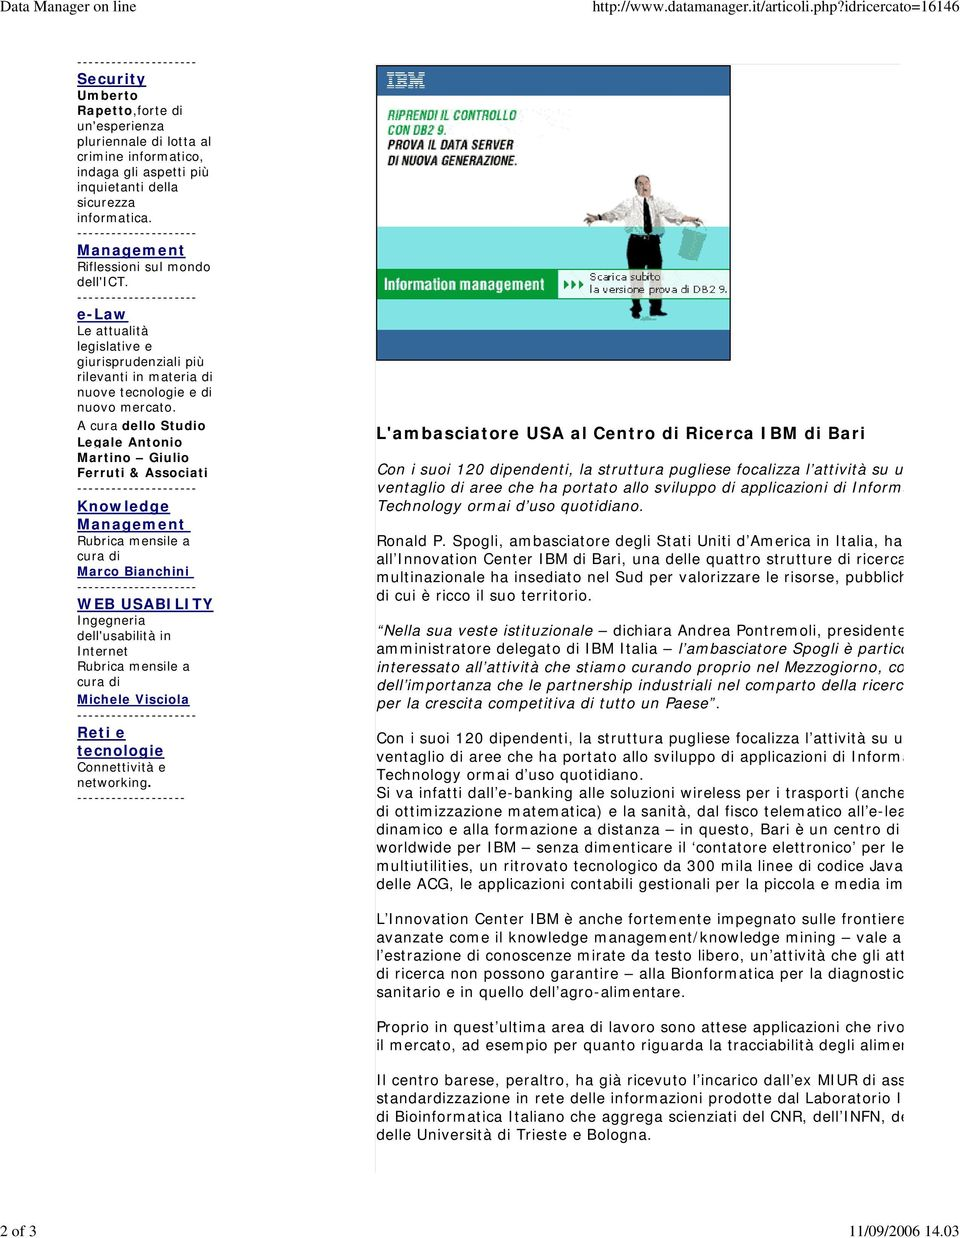 --------------------- Management Riflessioni sul mondo dell'ict.